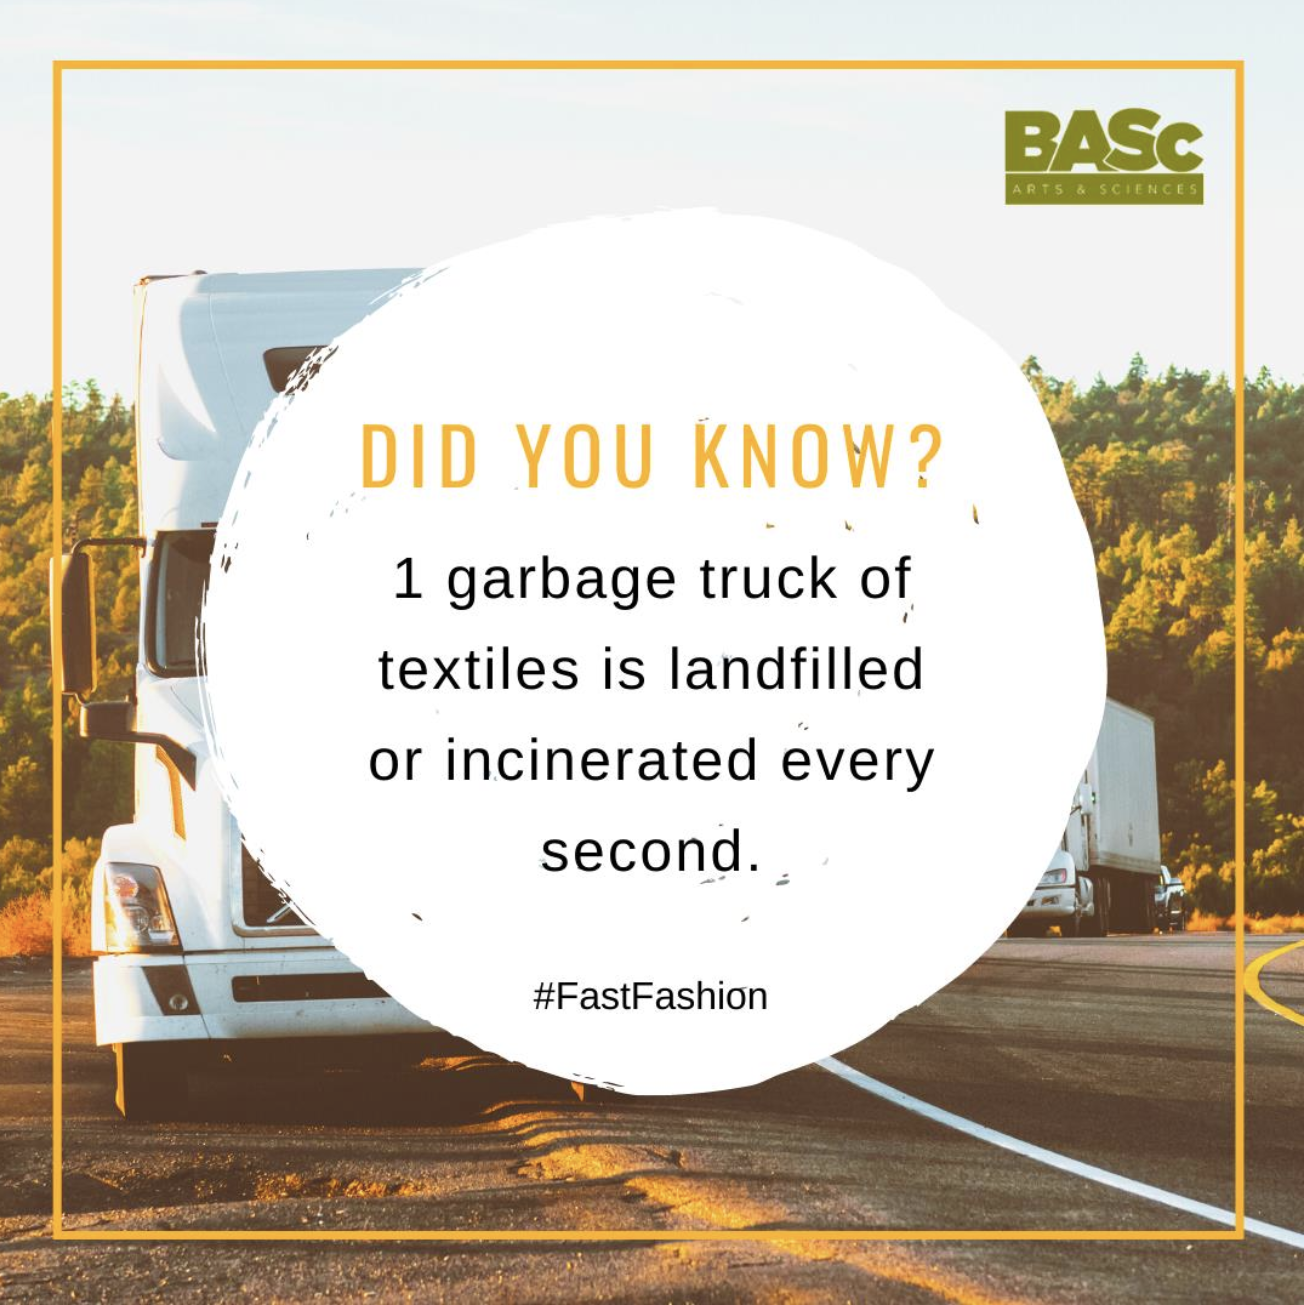 Did you know that one garbage truck of textiles is landfilled or incinerated every second?